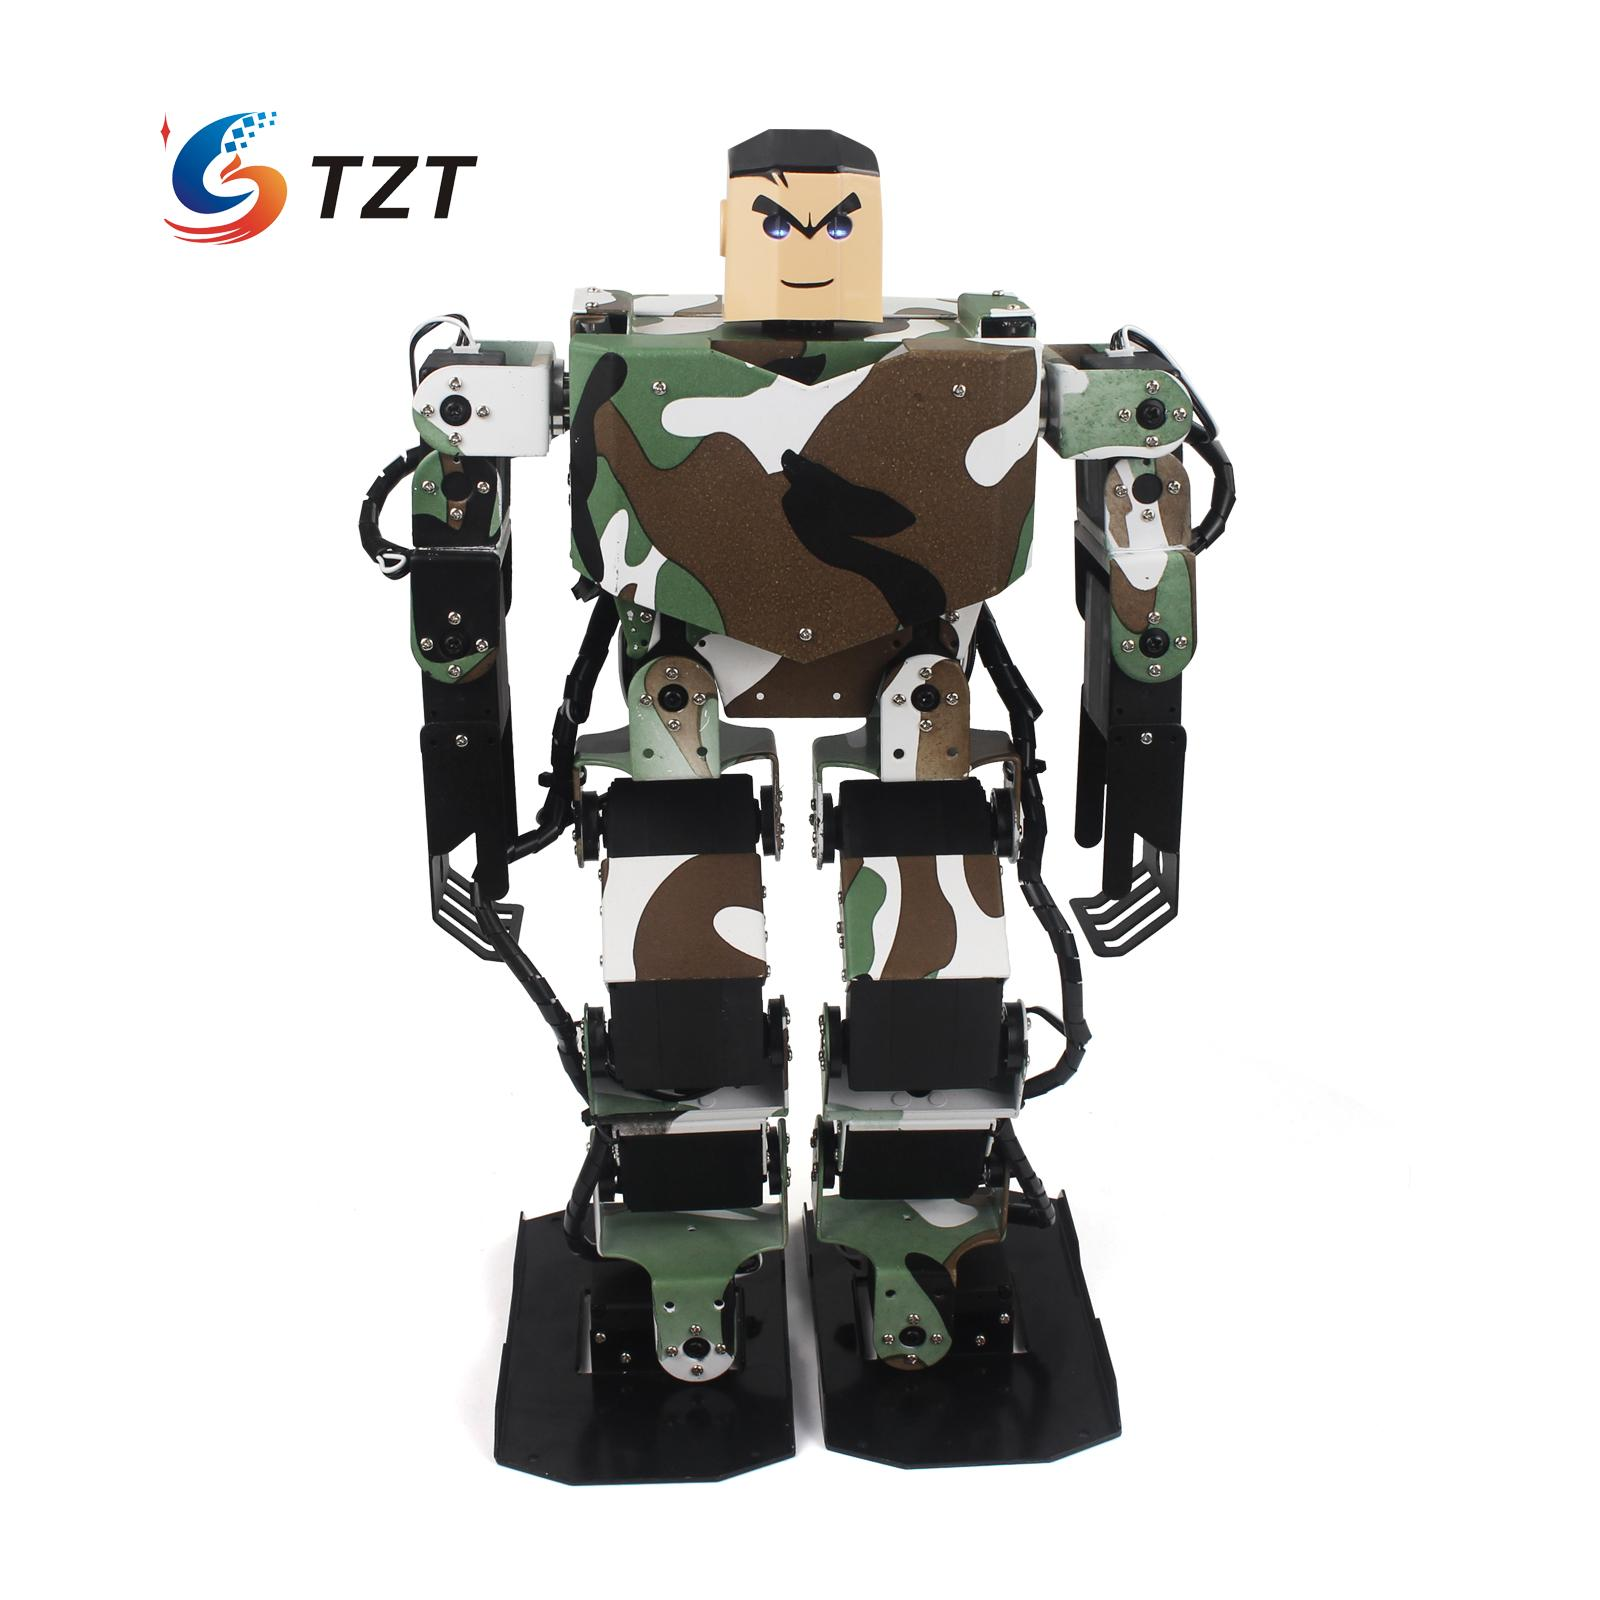 Soldier King 16DOF Smart Humanoid Robot Frame Kits Contest Dance Biped Robotics with Servos for DIY Unassembled new 17 degrees of freedom humanoid biped robot teaching and research biped robot platform model no electronic control system